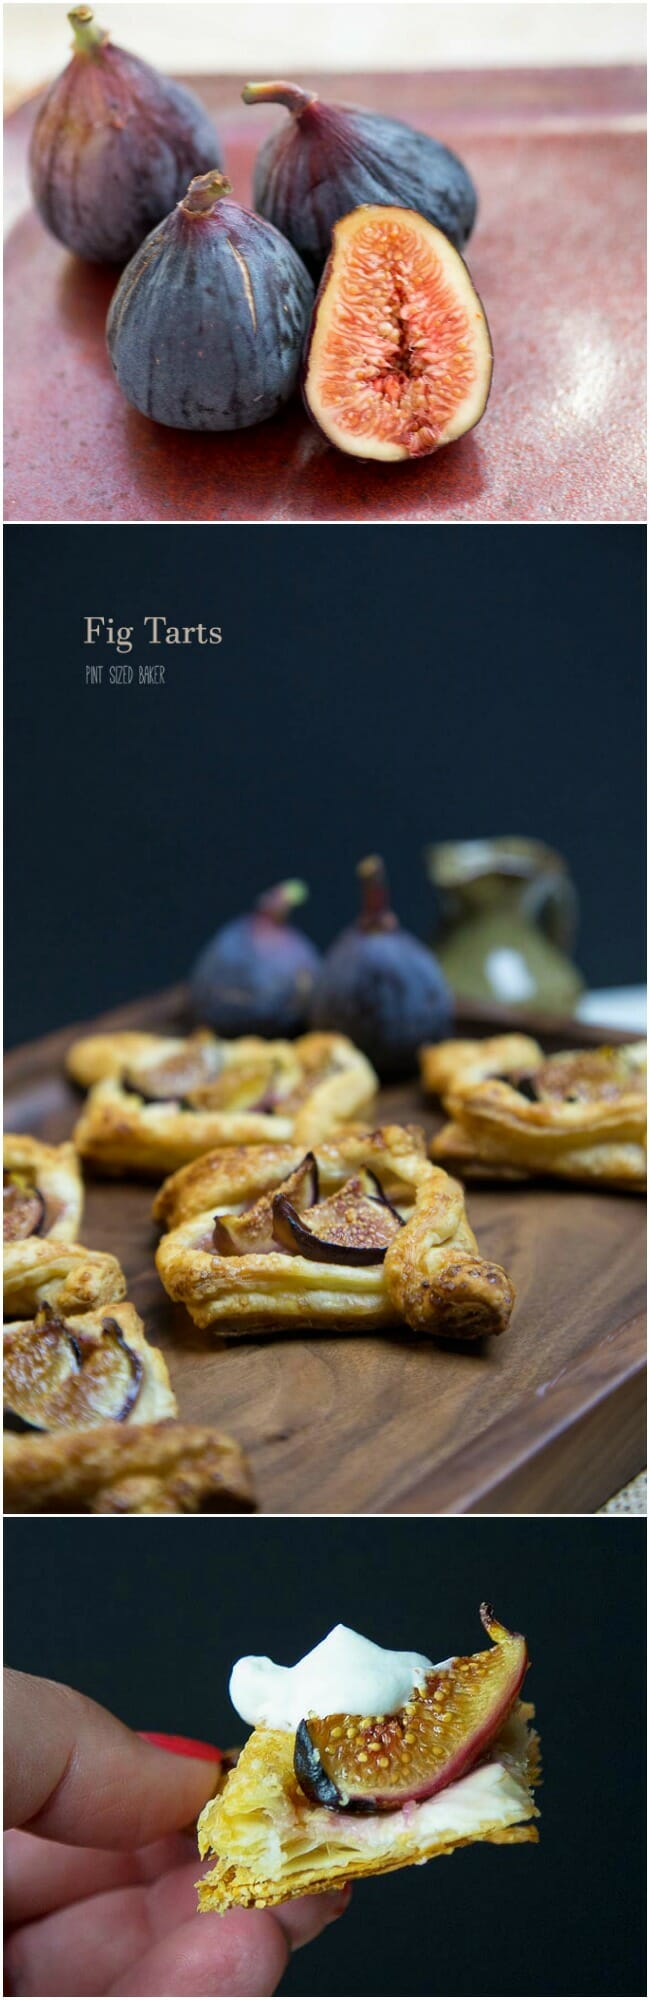 Easy puff pastry Fig Tarts made with just a few simple ingredients, they are ready to enjoy in 30 minutes.